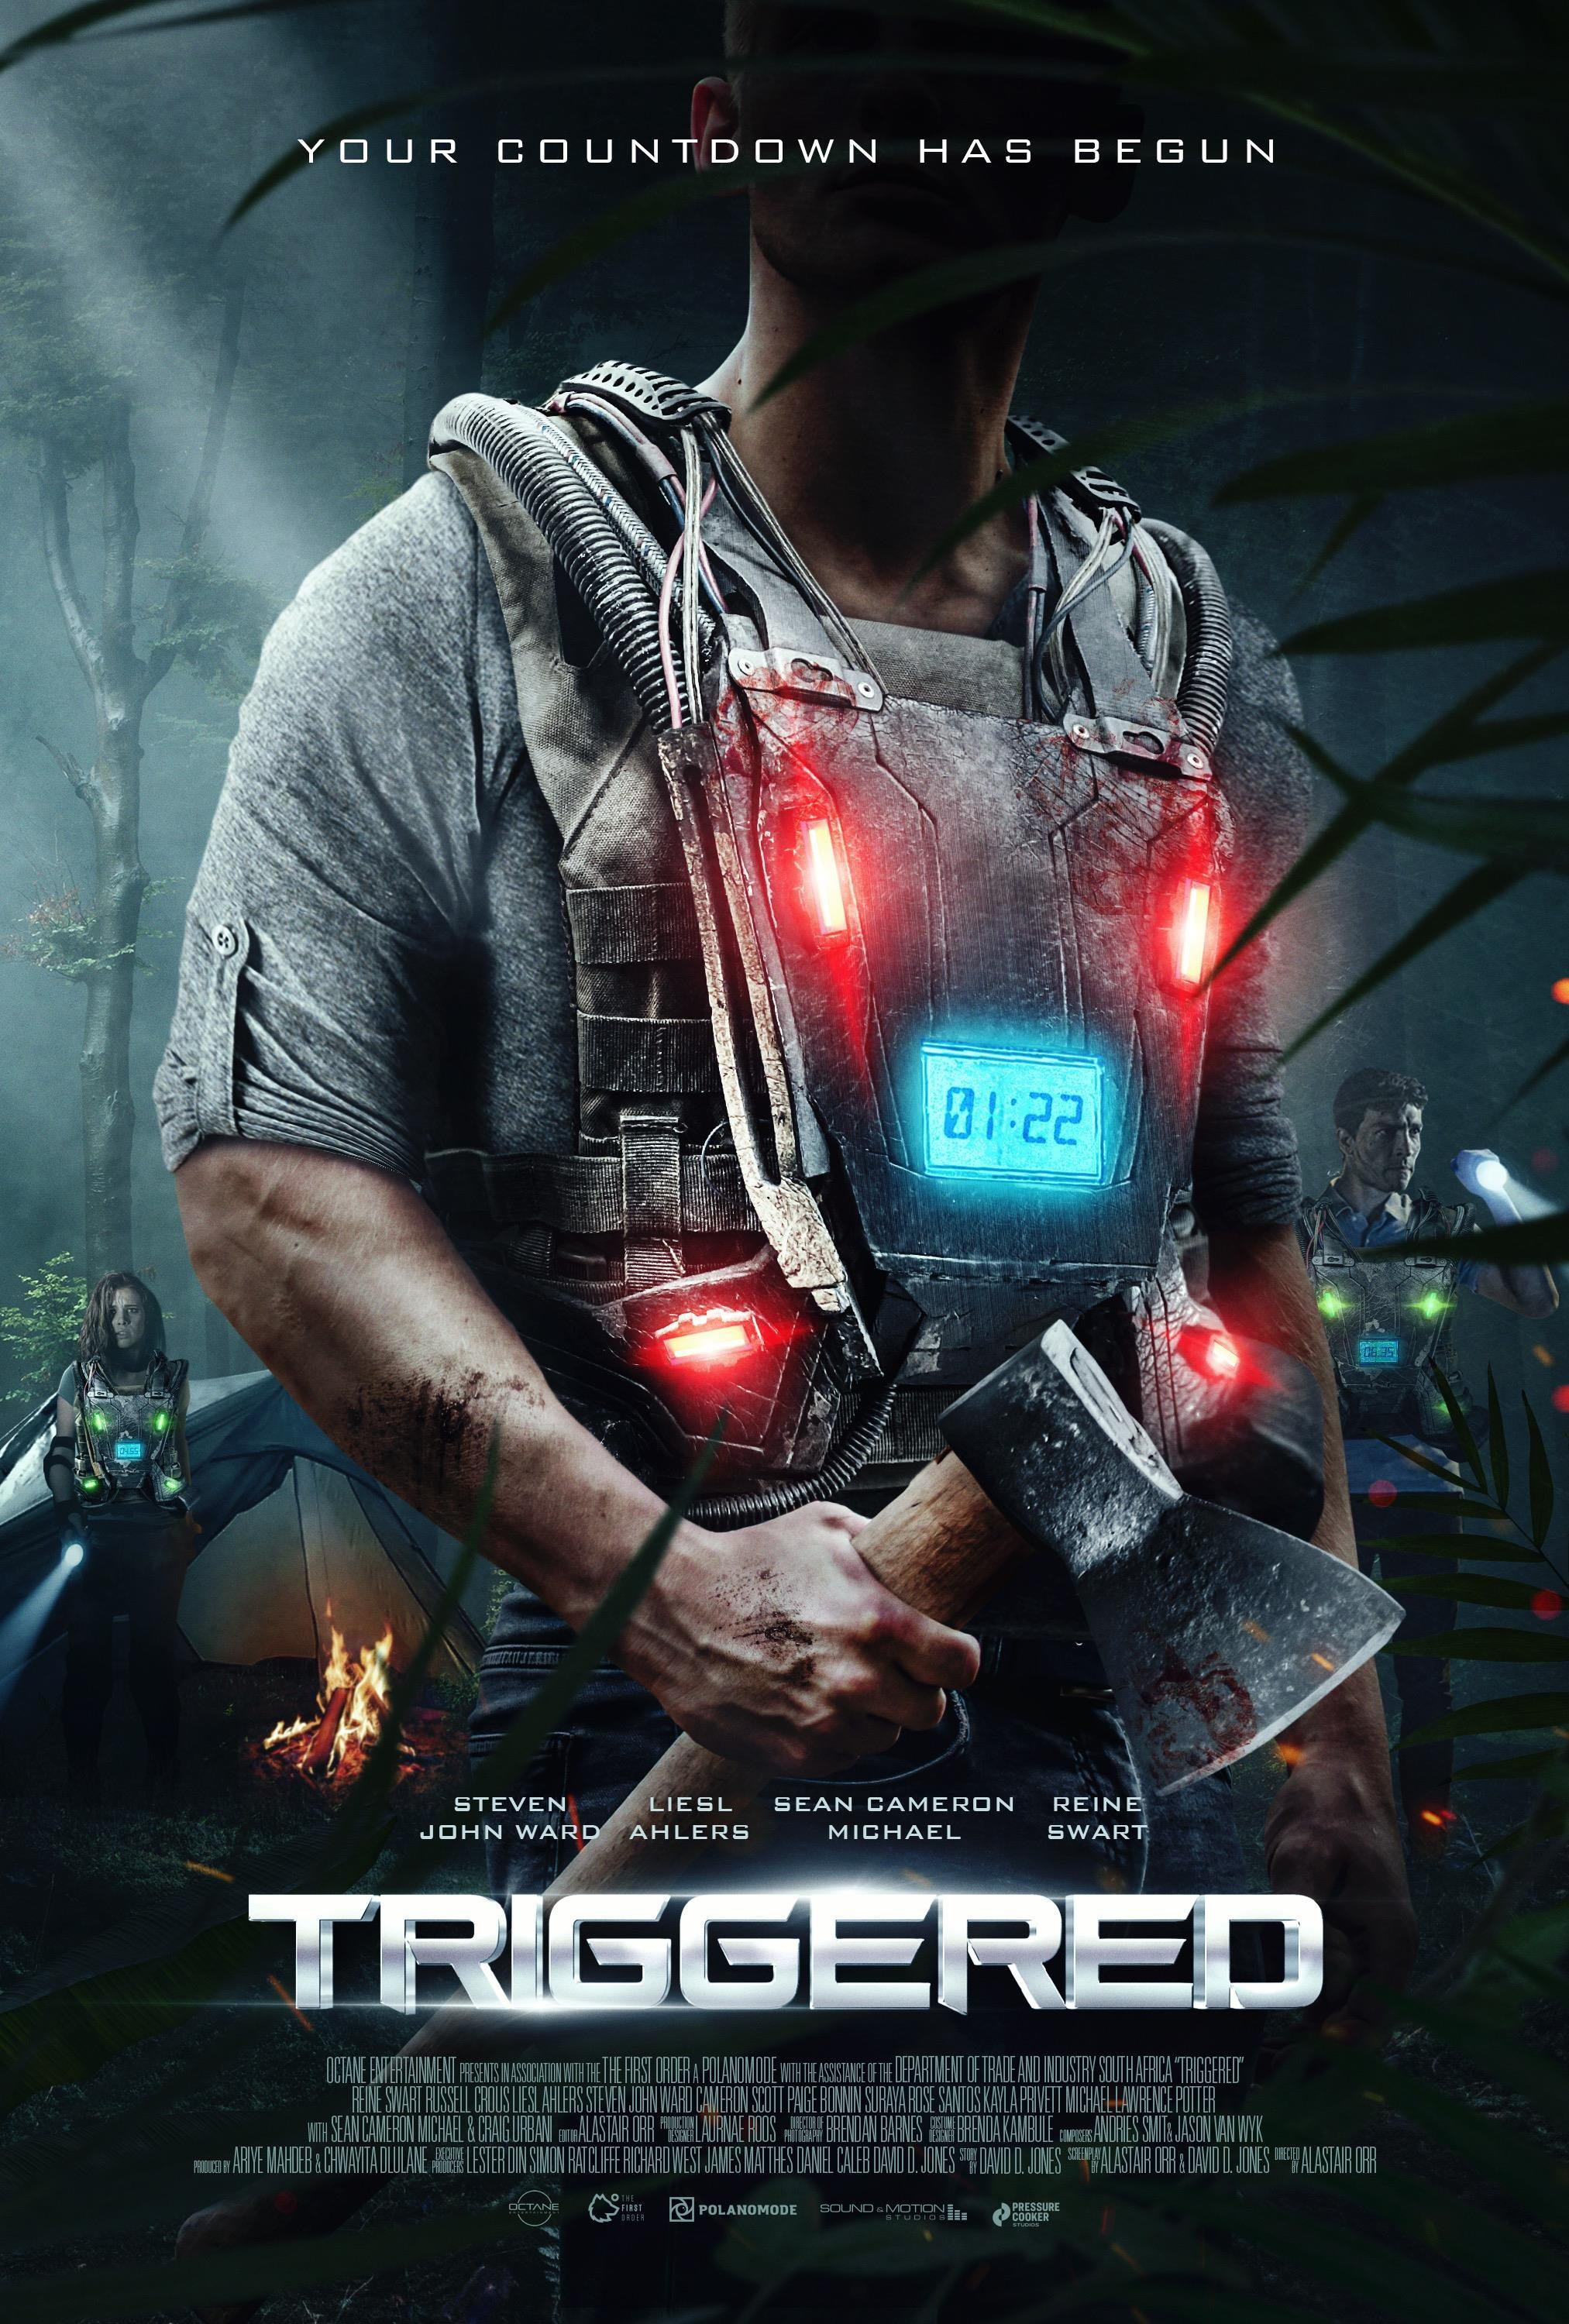 Triggered 2020 English 720p HDRip 400MB Download